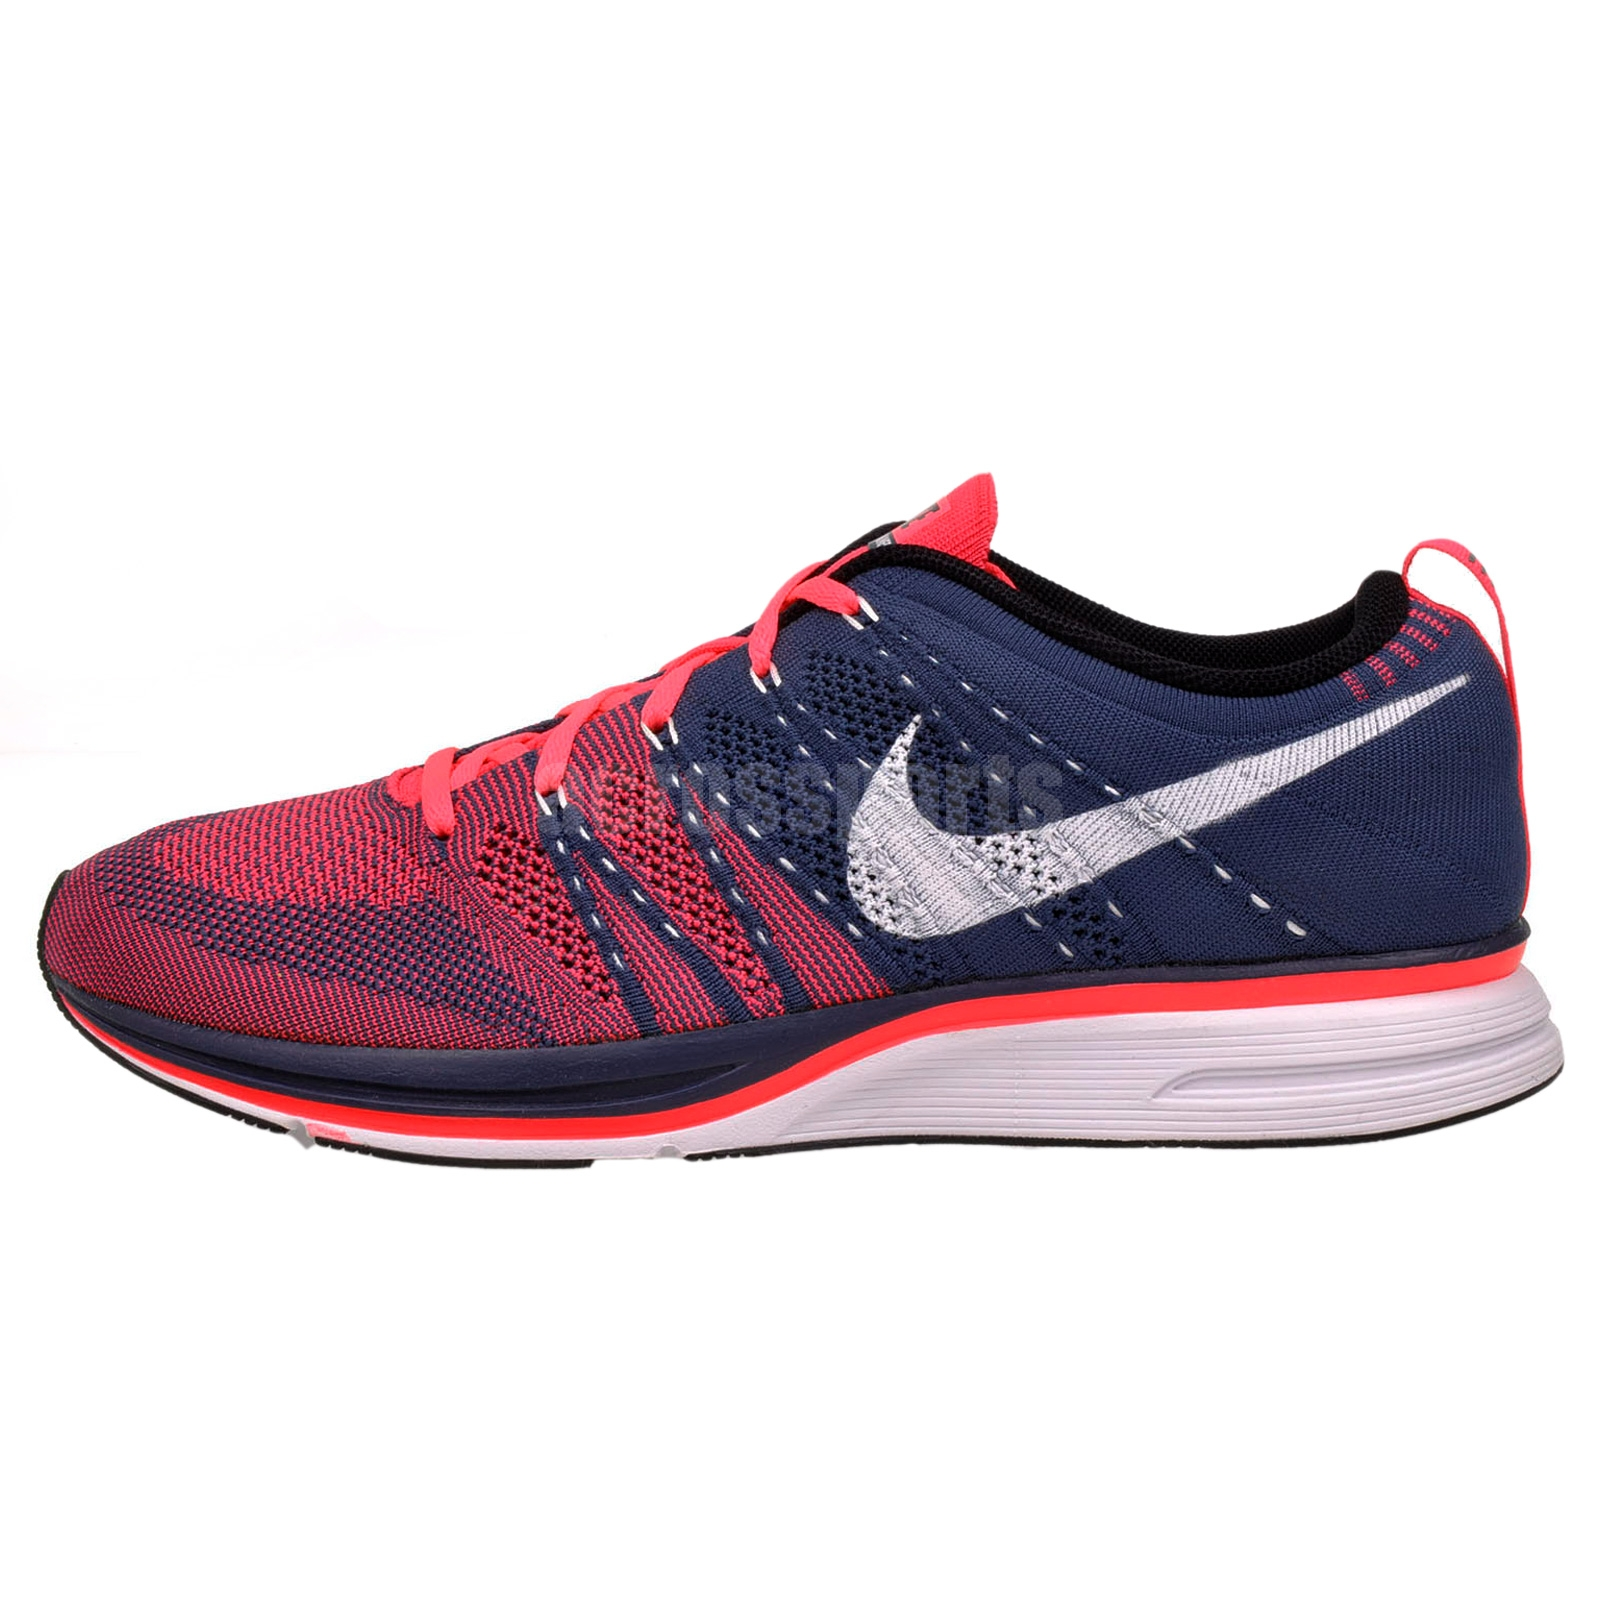 Brilliant  Shoes  Nike  Nike Women39s Free Cross Compete Training Shoe